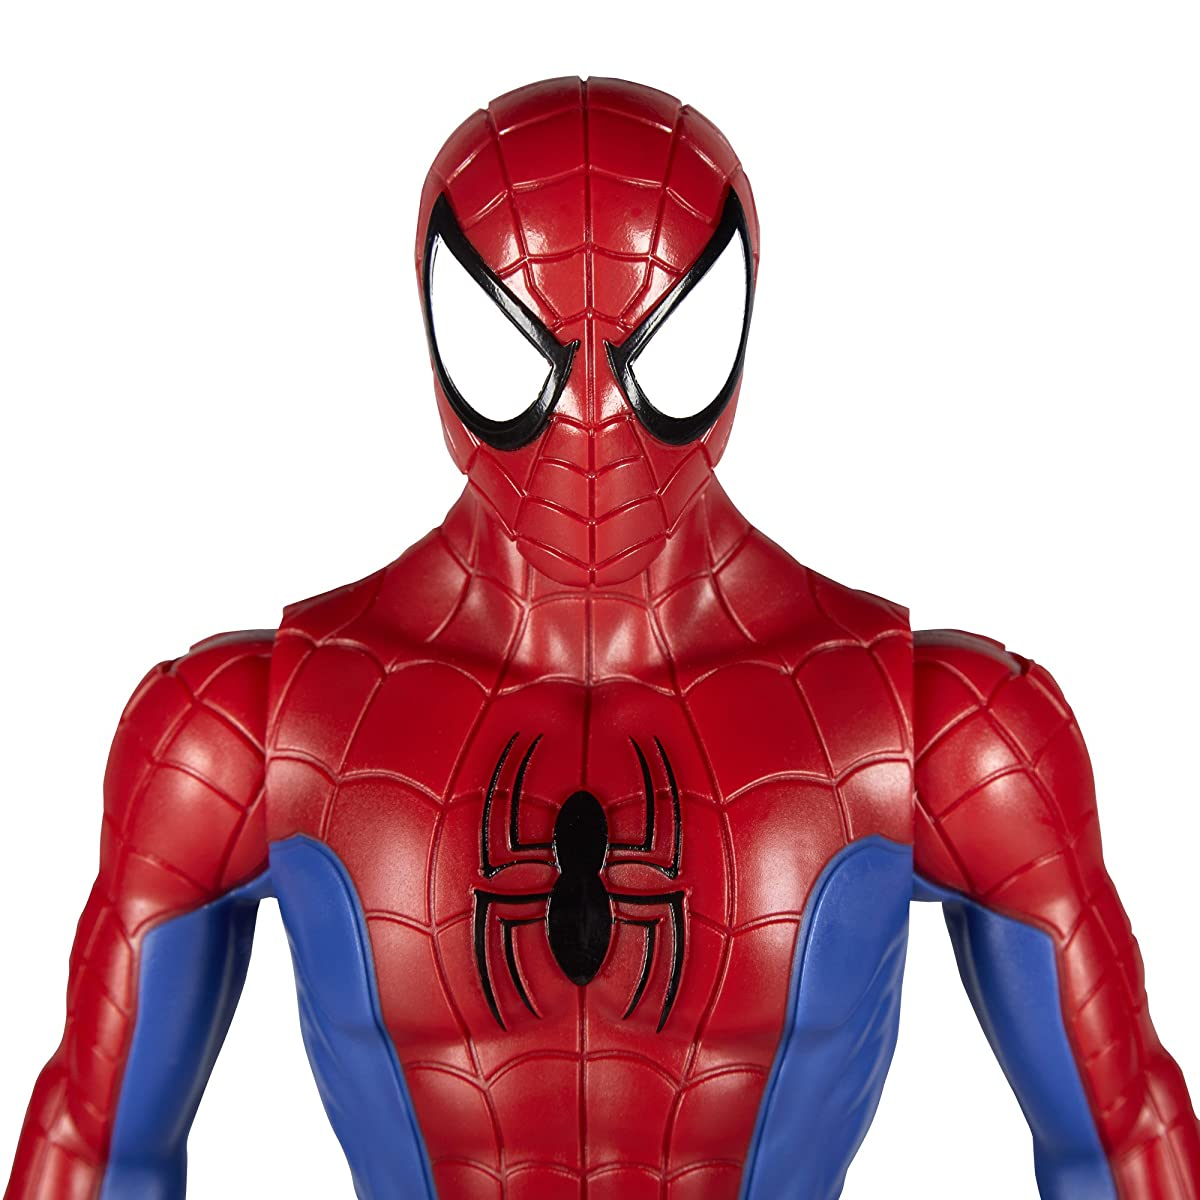 Spider-Man Titan Hero Series Figure with Titan Hero Power Fx Port E0649